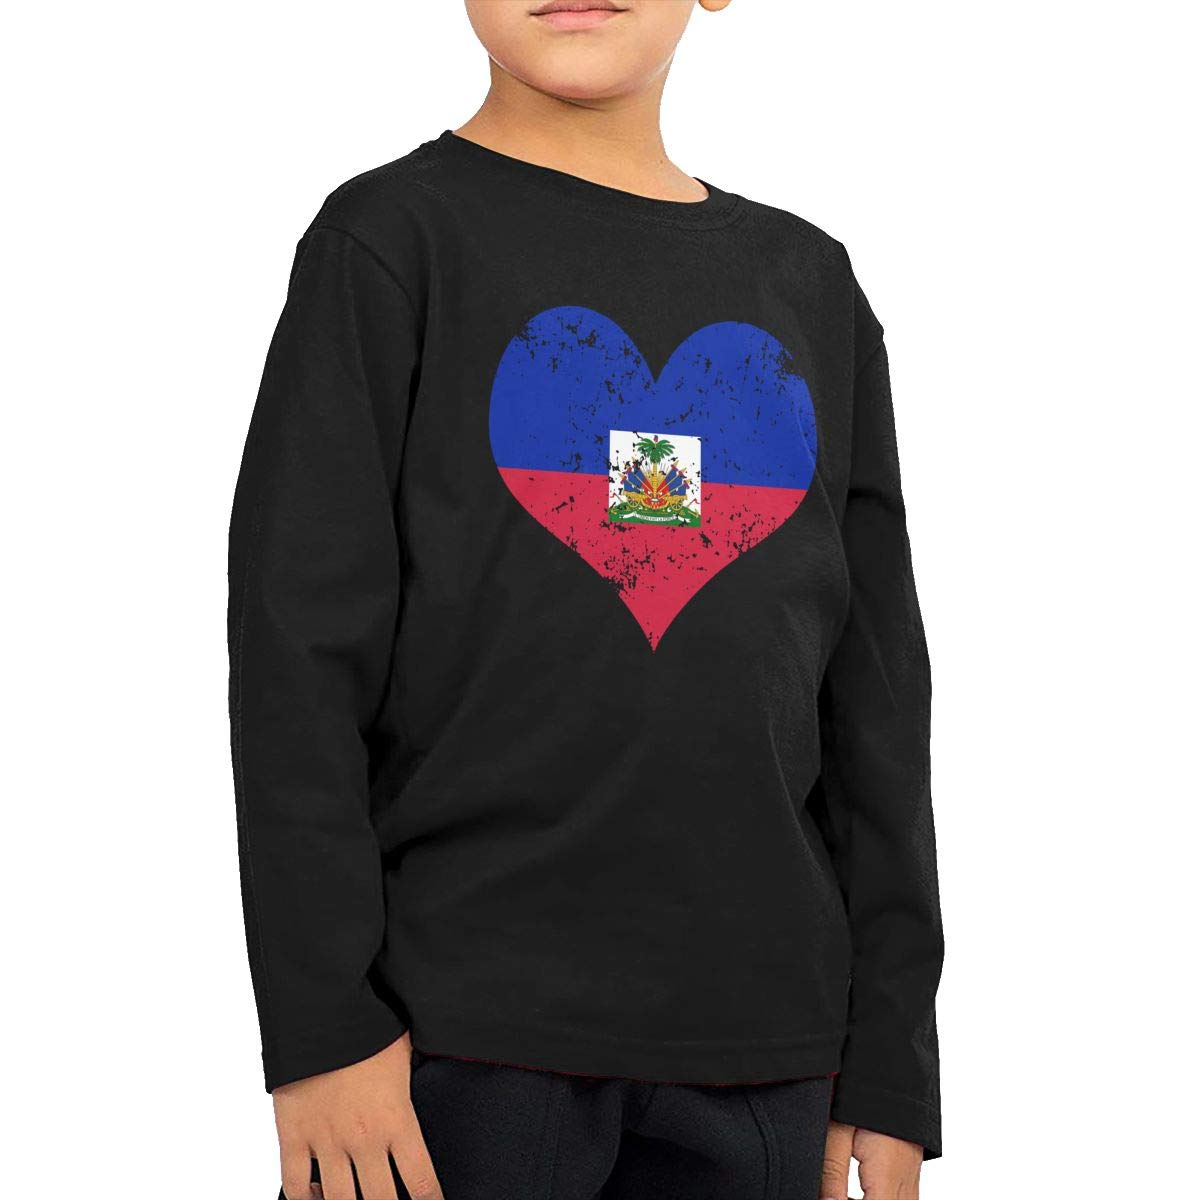 SHIRT1-KIDS Haiti Heart Flag Toddler//Infant Crew Neck Long Sleeve Shirt Tee Jersey for Toddlers